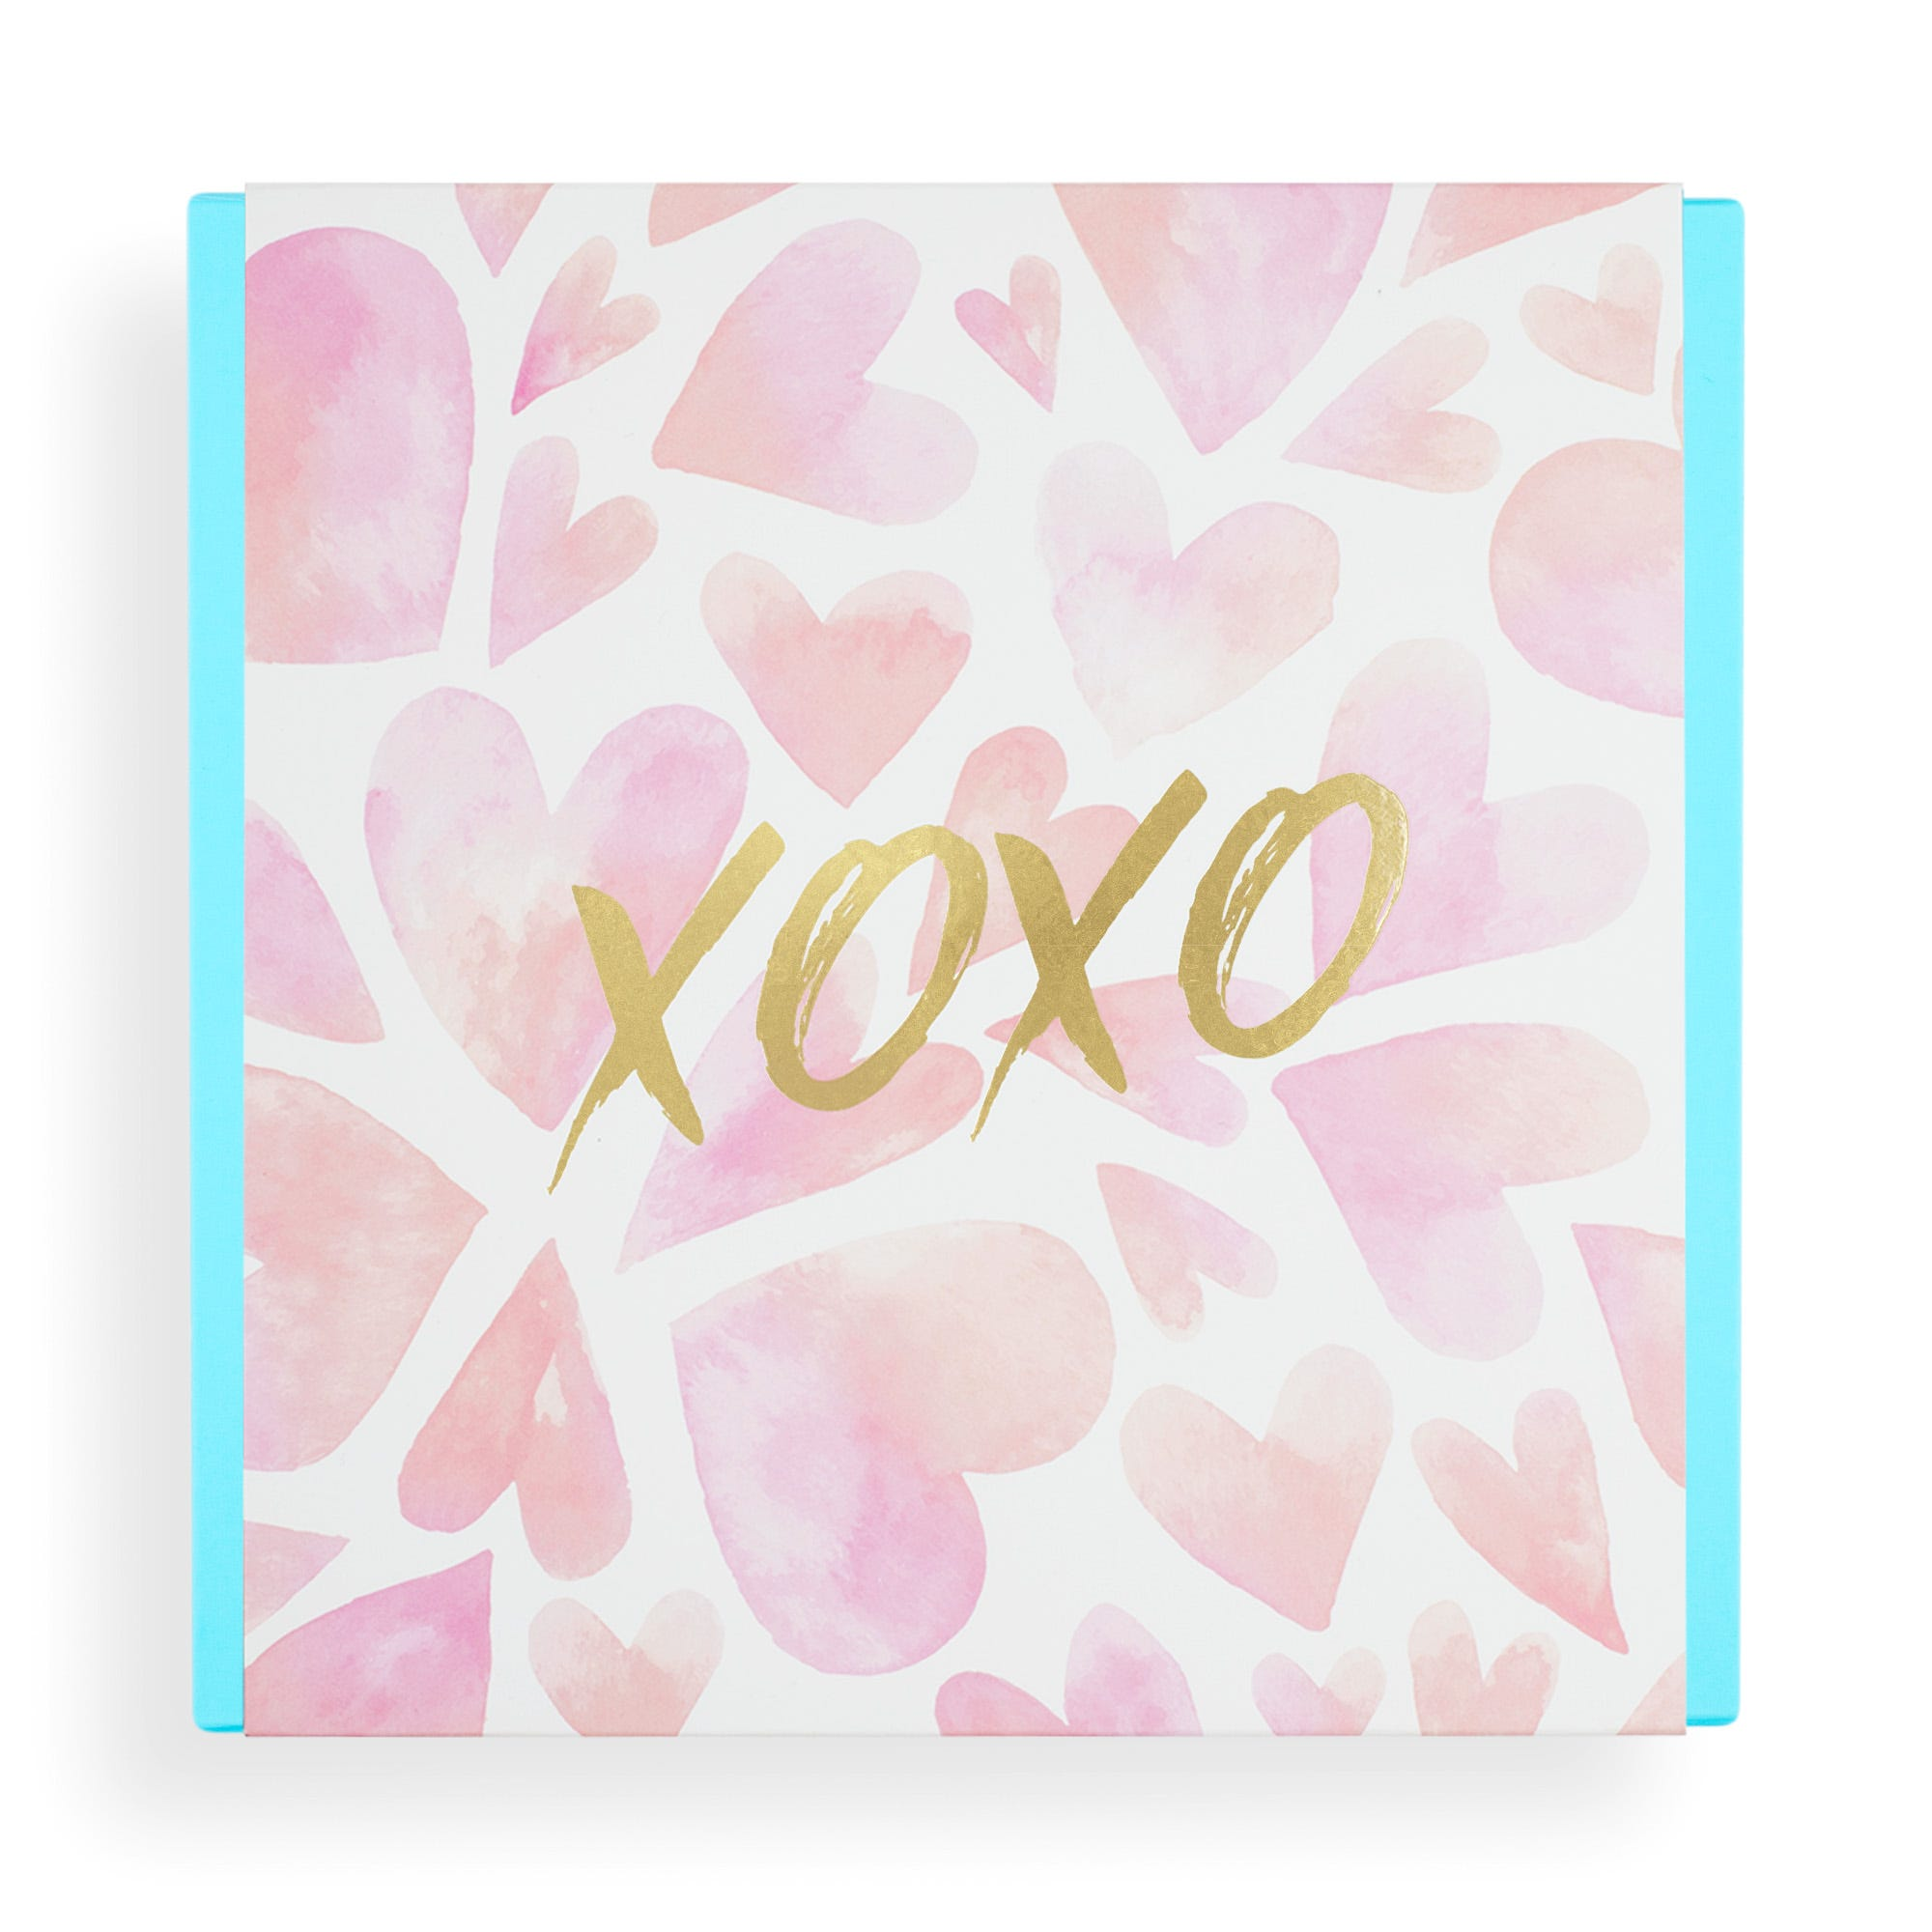 XOXO 8pc Candy Bento Box®